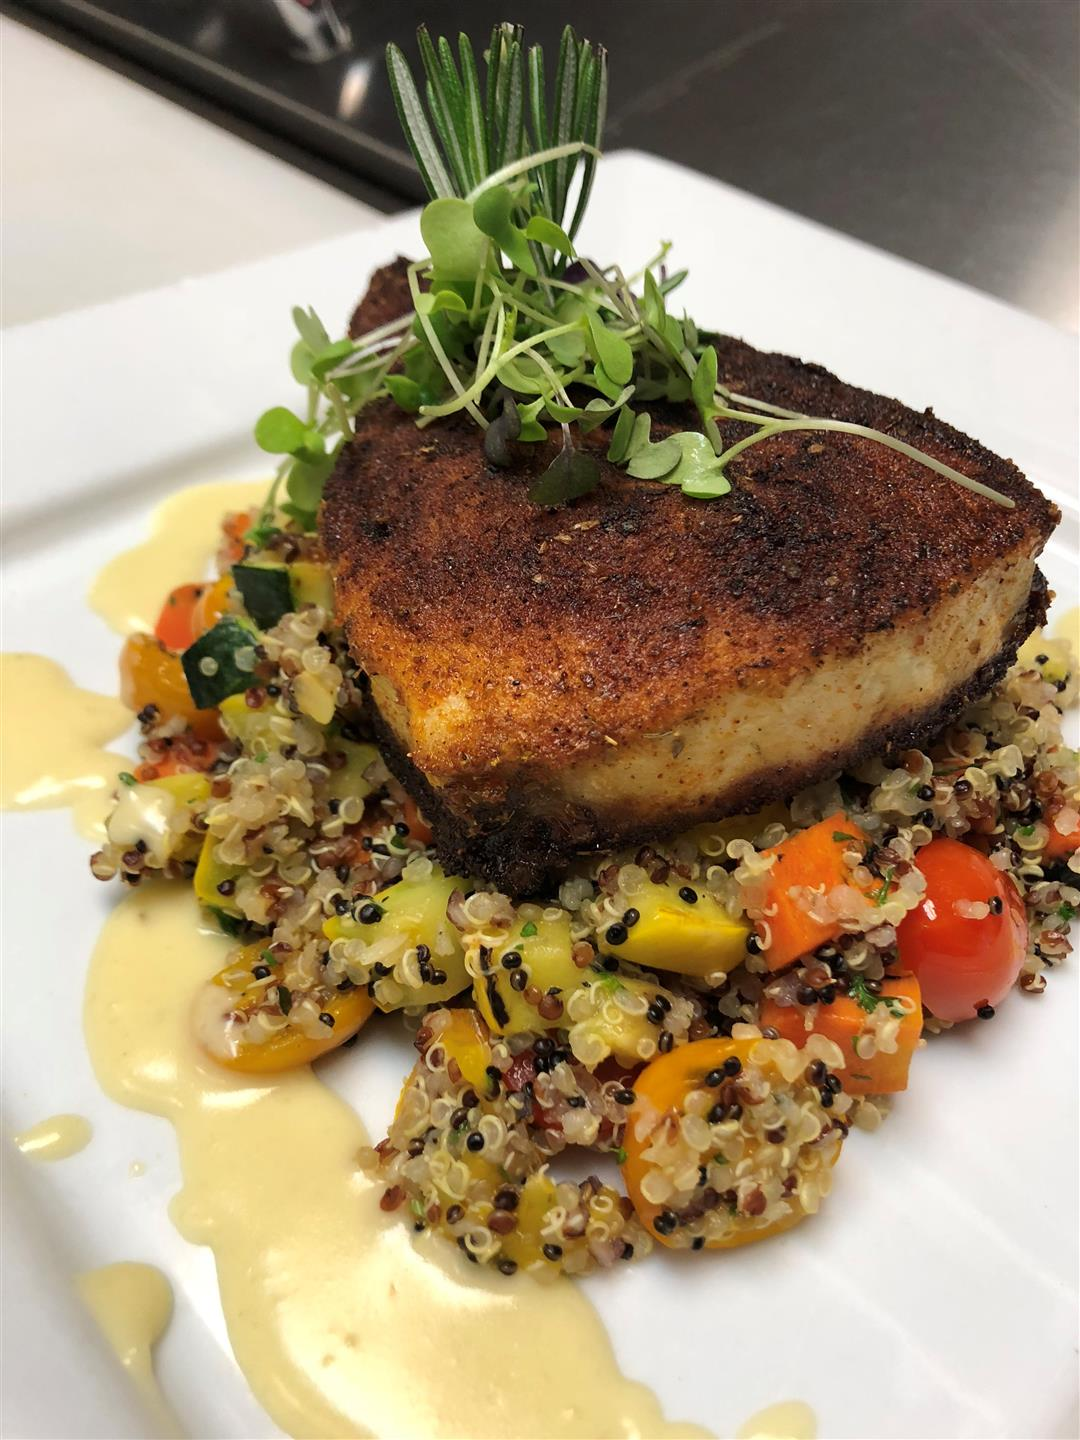 a baked fish dish on a bed of quinoa and mixed vegetables with cream sauce and garnished on a white plate